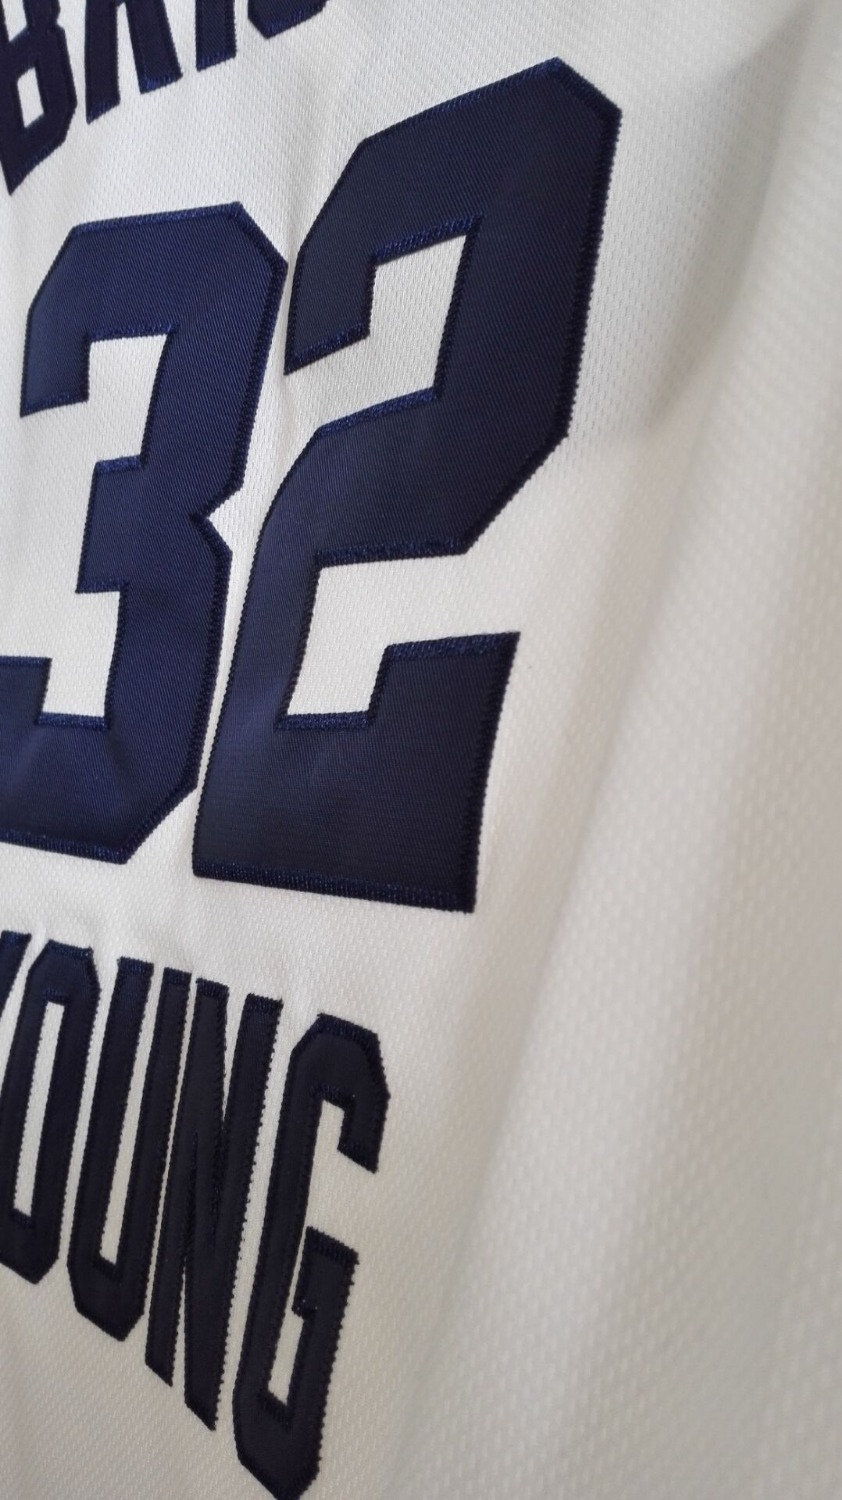 873f184e3b3 ... LANSHITINA Cheap Throwback Basketball Jersey Jimmer Fredette 32 Brigham  Young BYU College Jersey White Black Retro 2017 ...